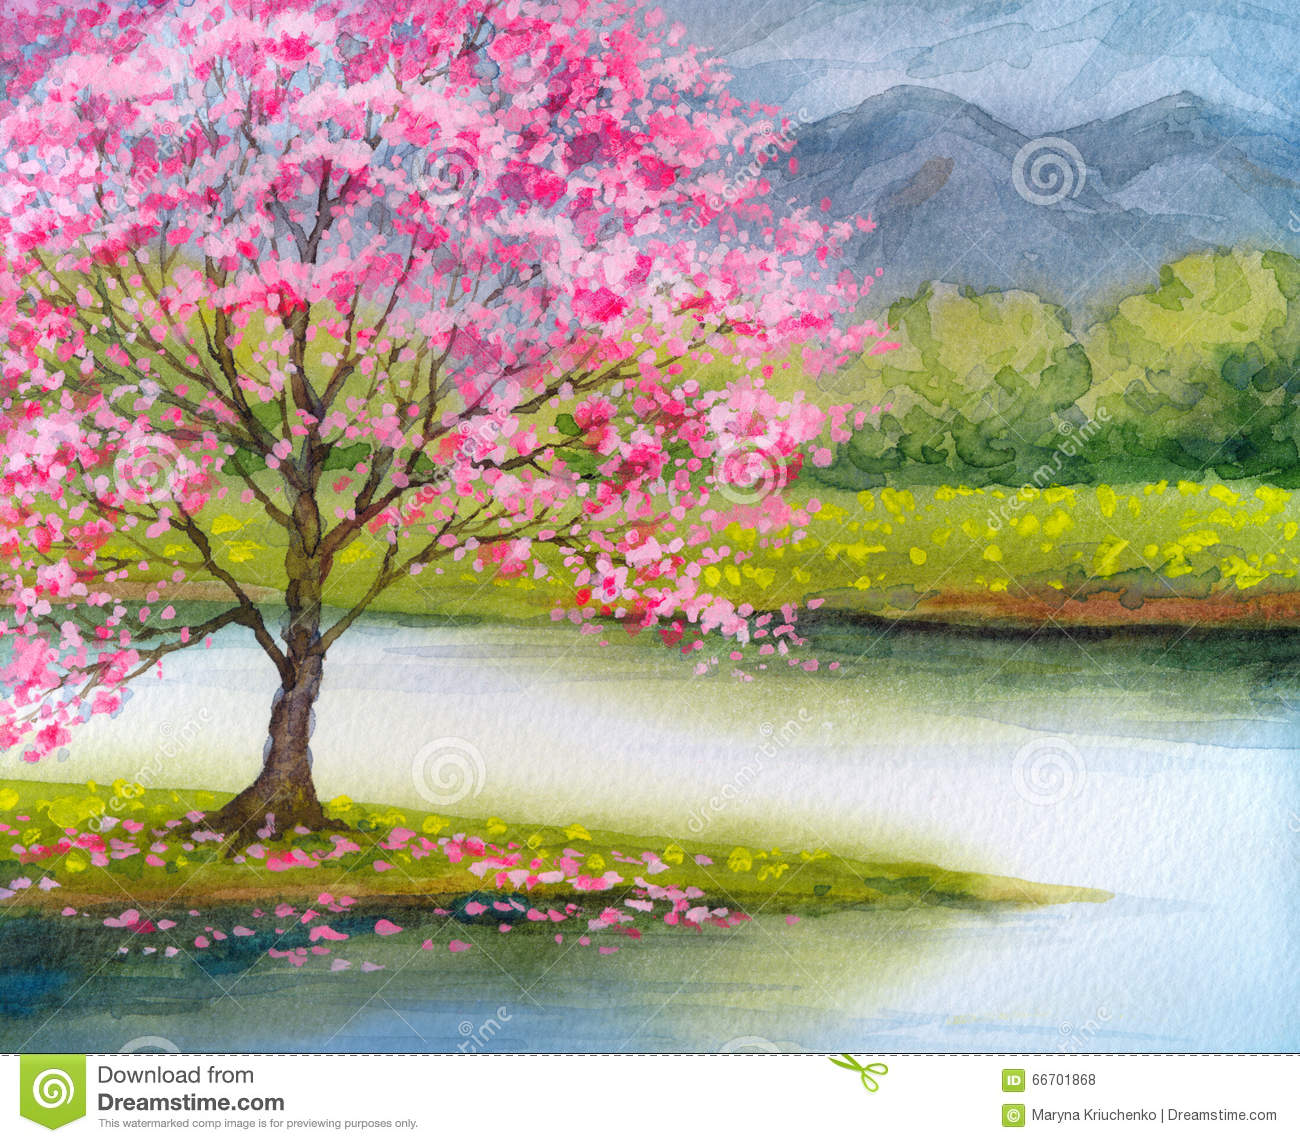 watercolor landscape flowering pink tree by lake stock illustration